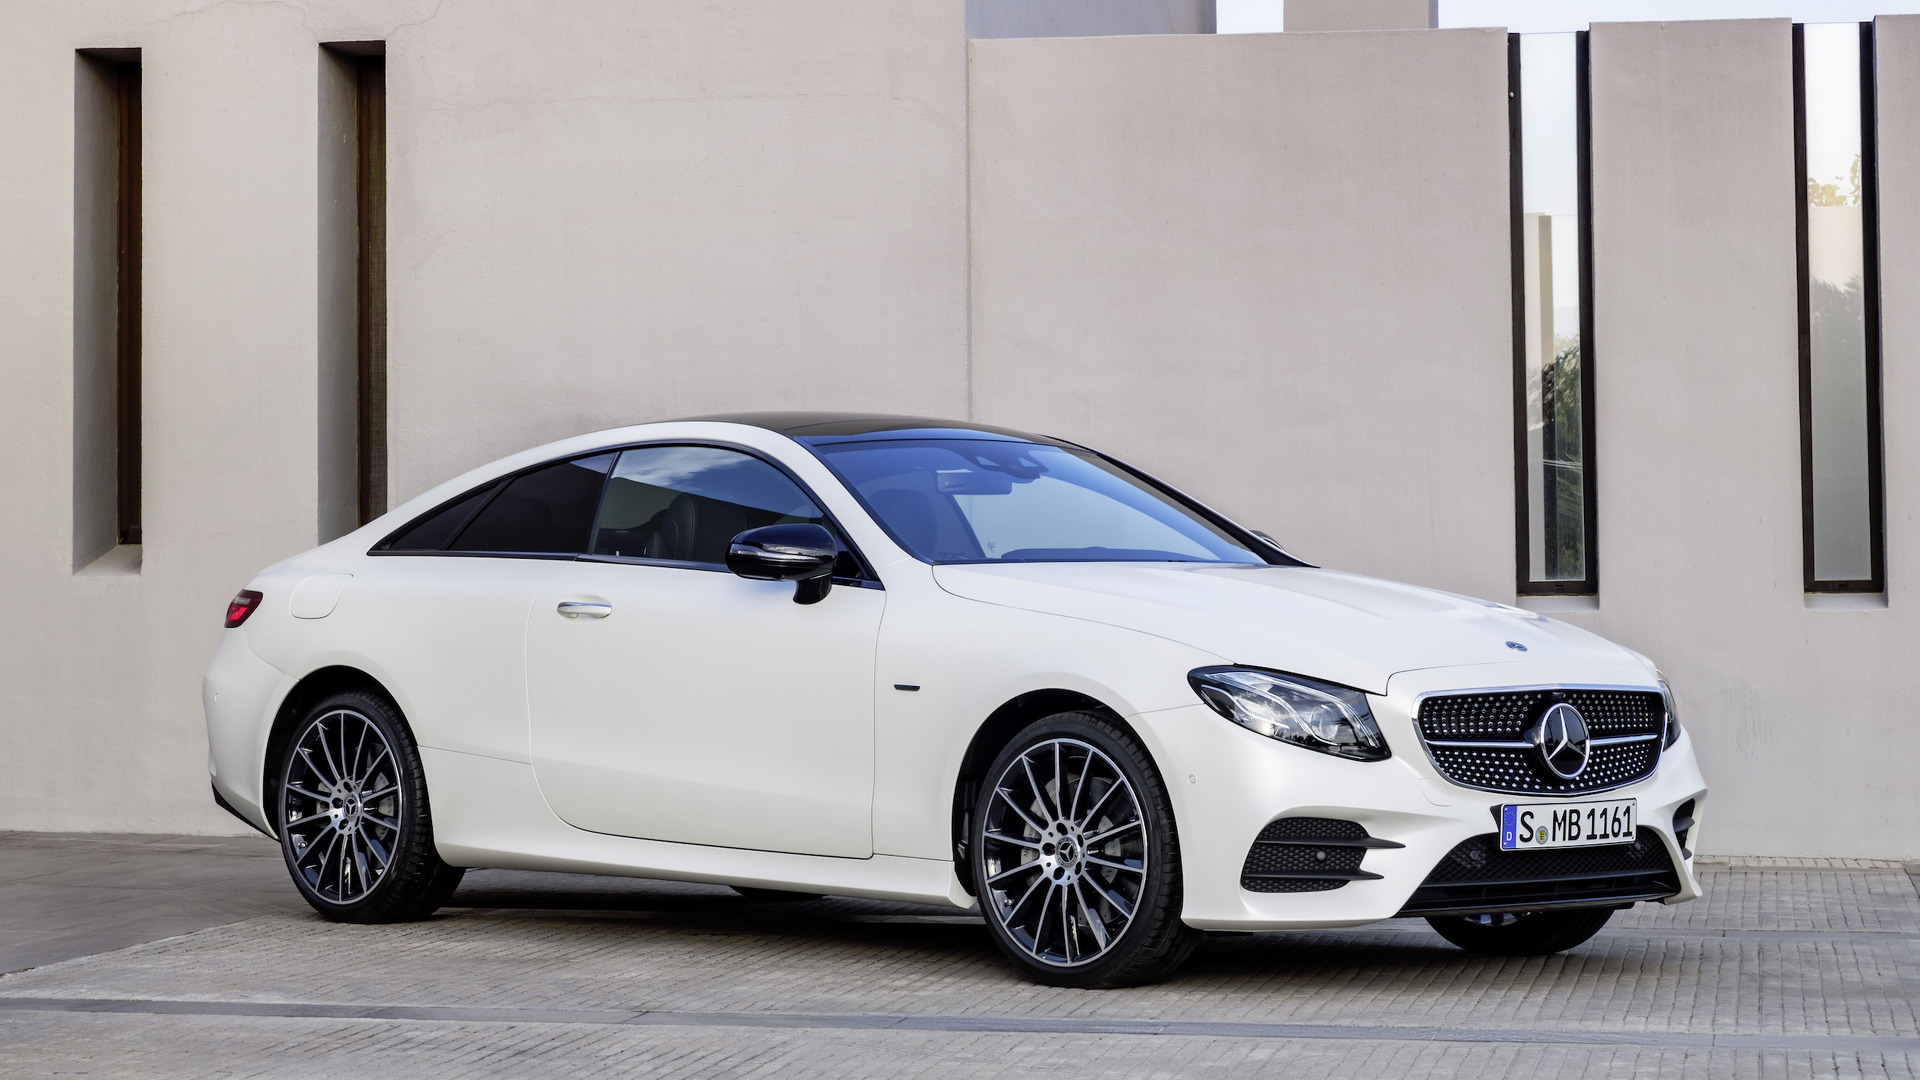 stock beach amg sale main l c mercedes used pompano for benz coupe htm s class